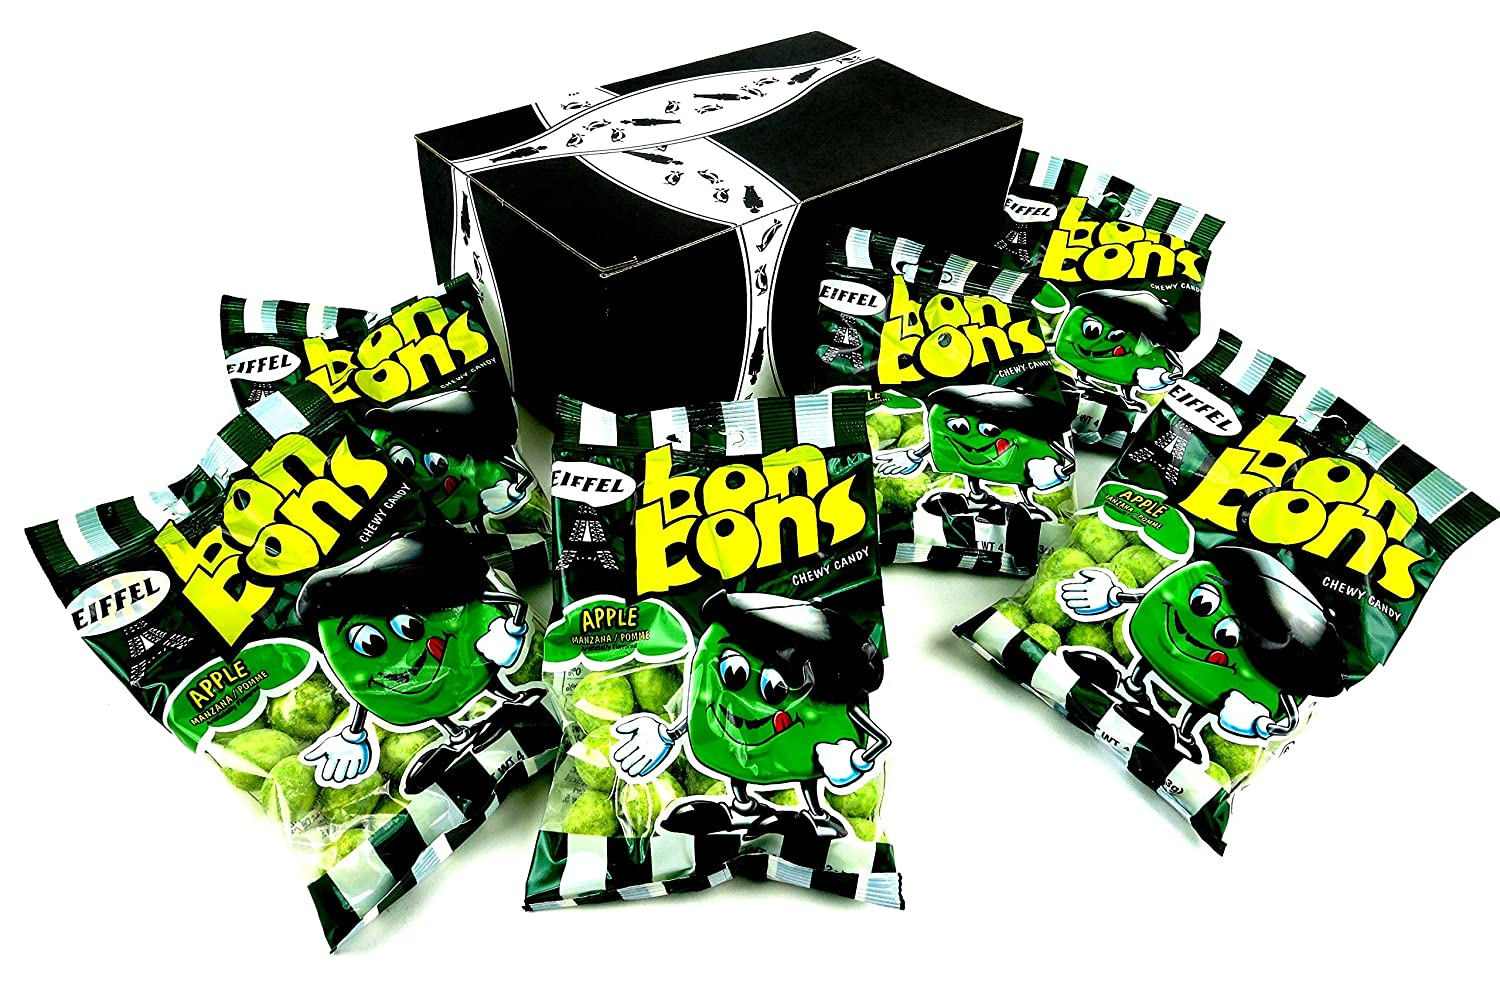 Eiffel Apple Bon Bons Chewy Candy, 4 oz Bags in a BlackTie Box (Pack of 6)